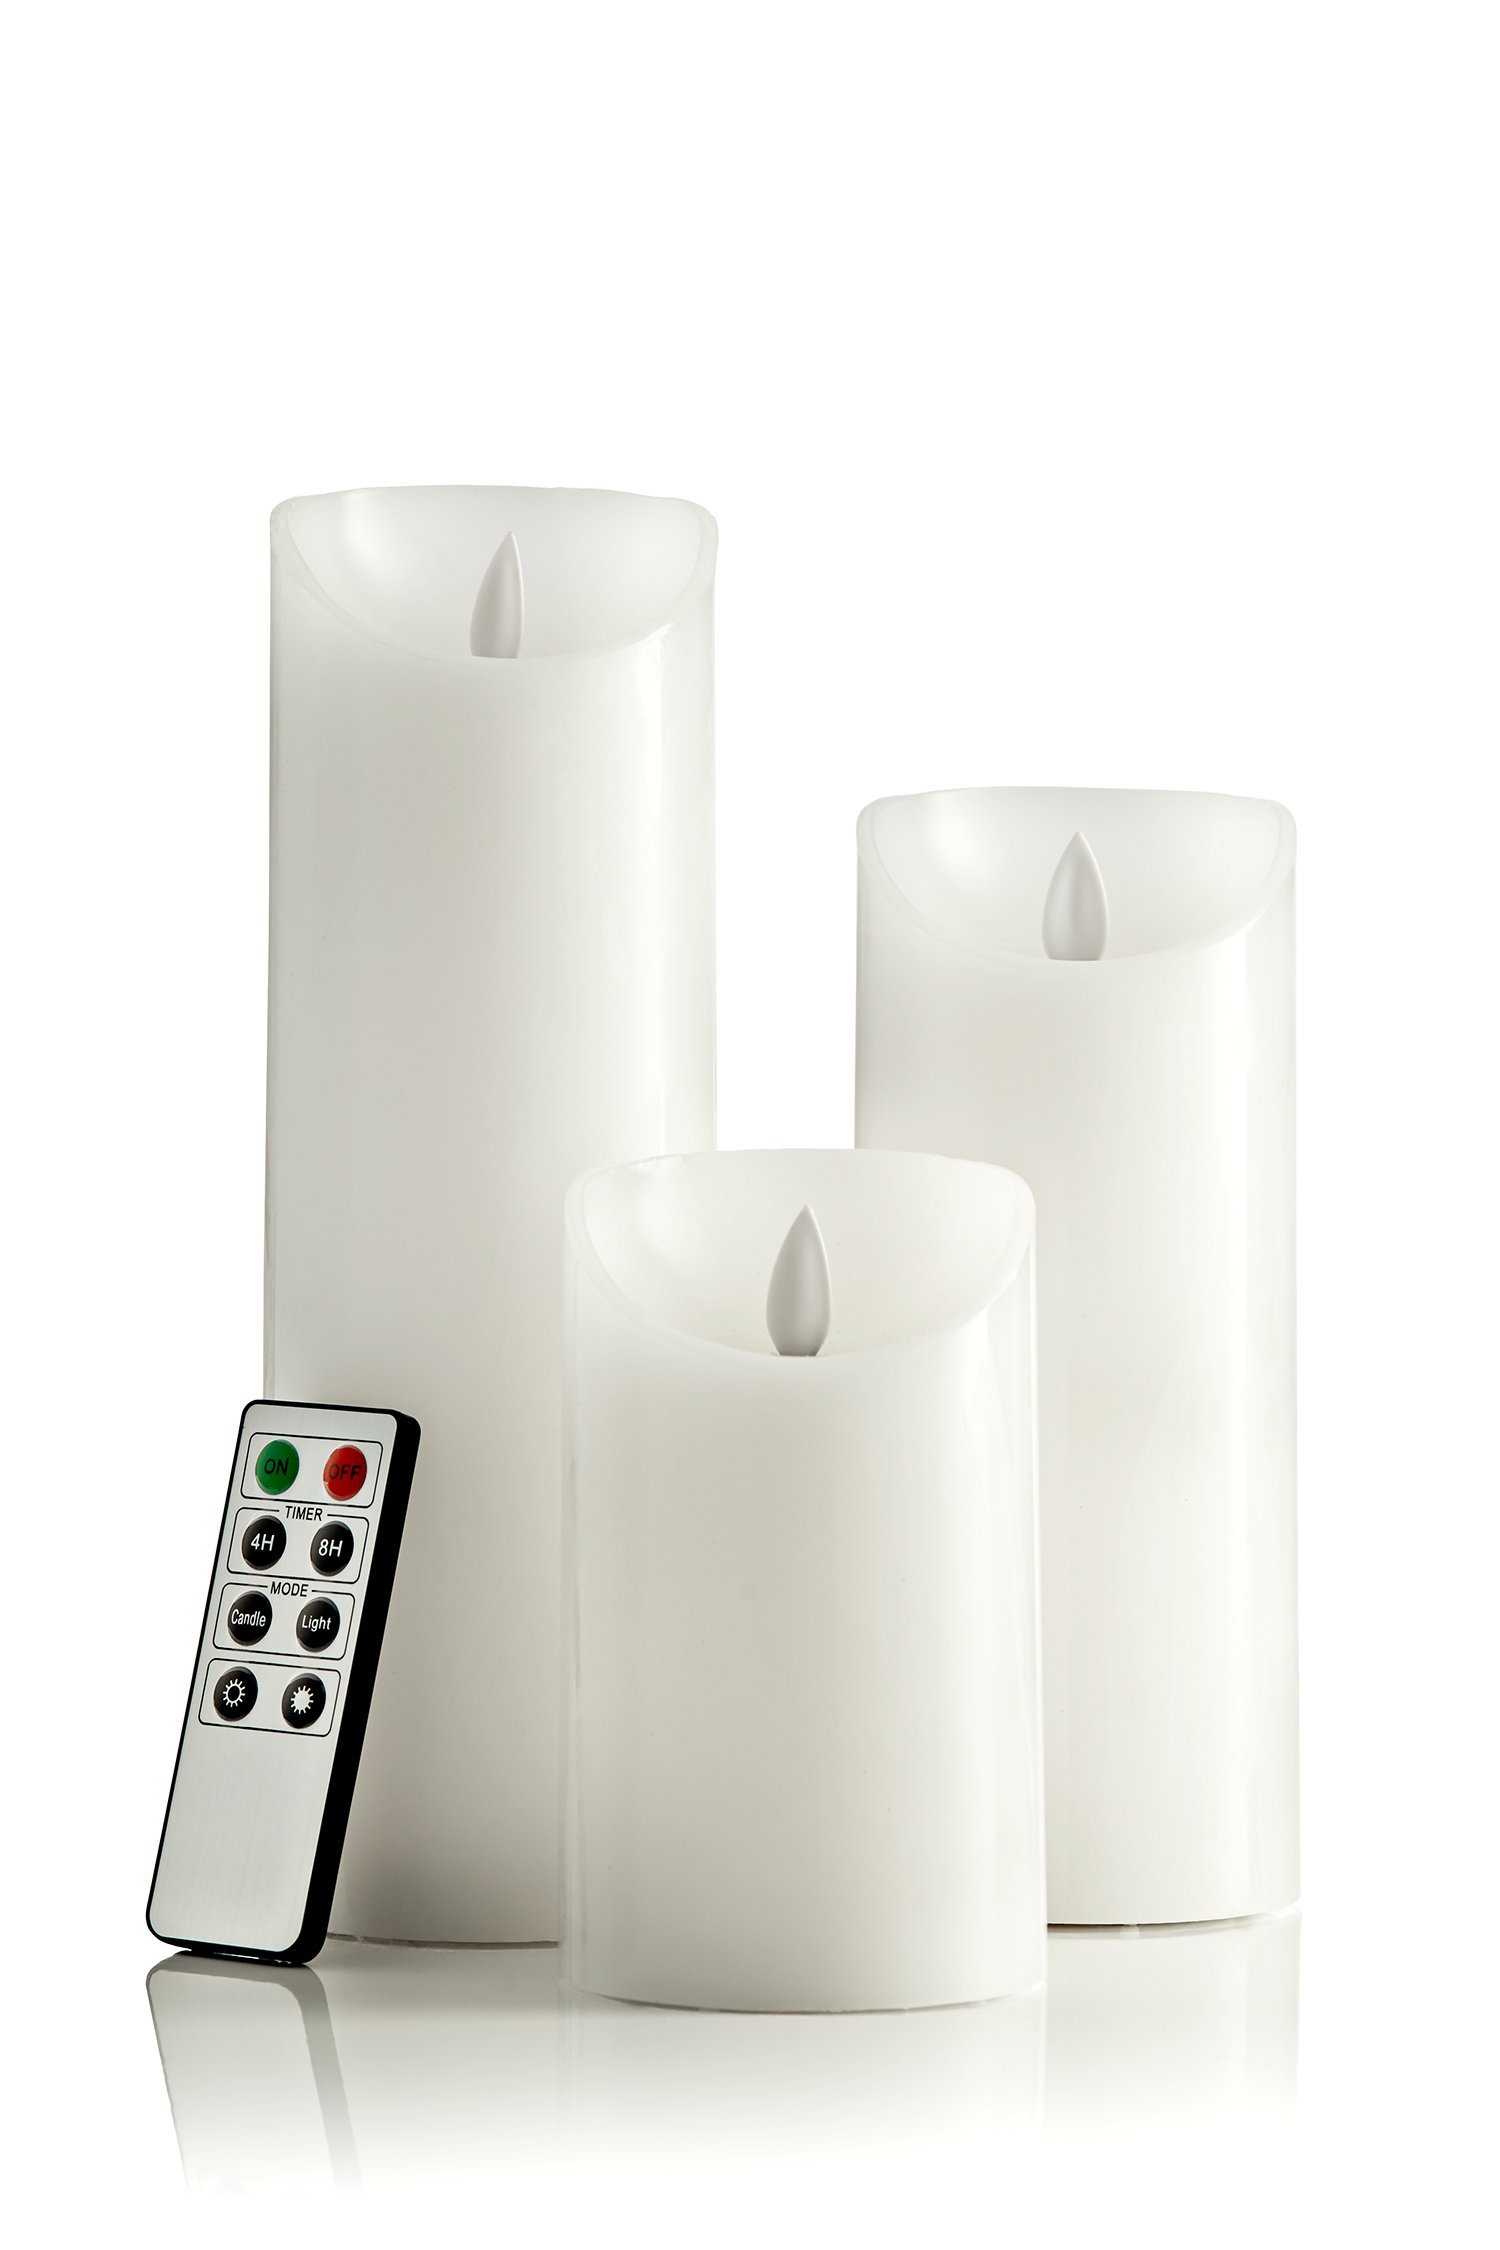 Flameless Elegant LED White Pillar Candles Battery Operated   Set of 3 with Remote Control. Sizes 5 inches   7 inches   9 inches   3 inches dia. Battery included with Remote